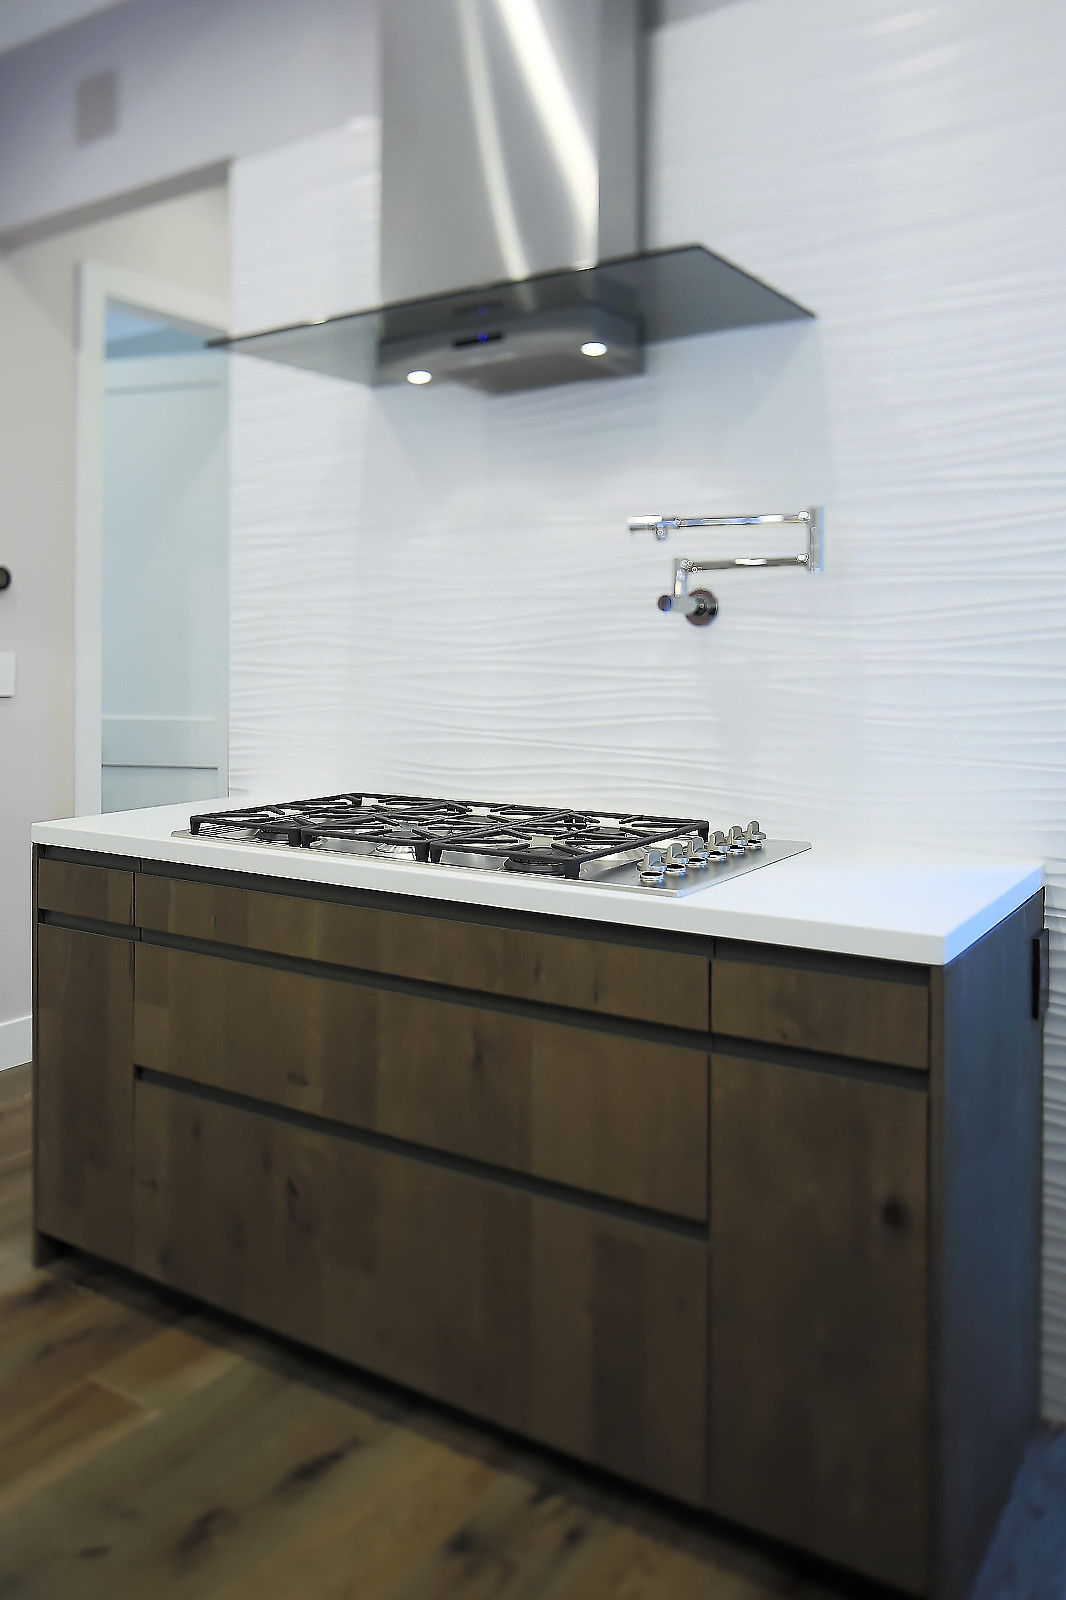 To help clear the kitchen air, this modern Zephyr hood is powerful and beautiful. A subtle difference in the Leicht kitchen cabinets is that they are grain-matched, textured, and have knots. Typically, you never see knots on slab door cabinets.